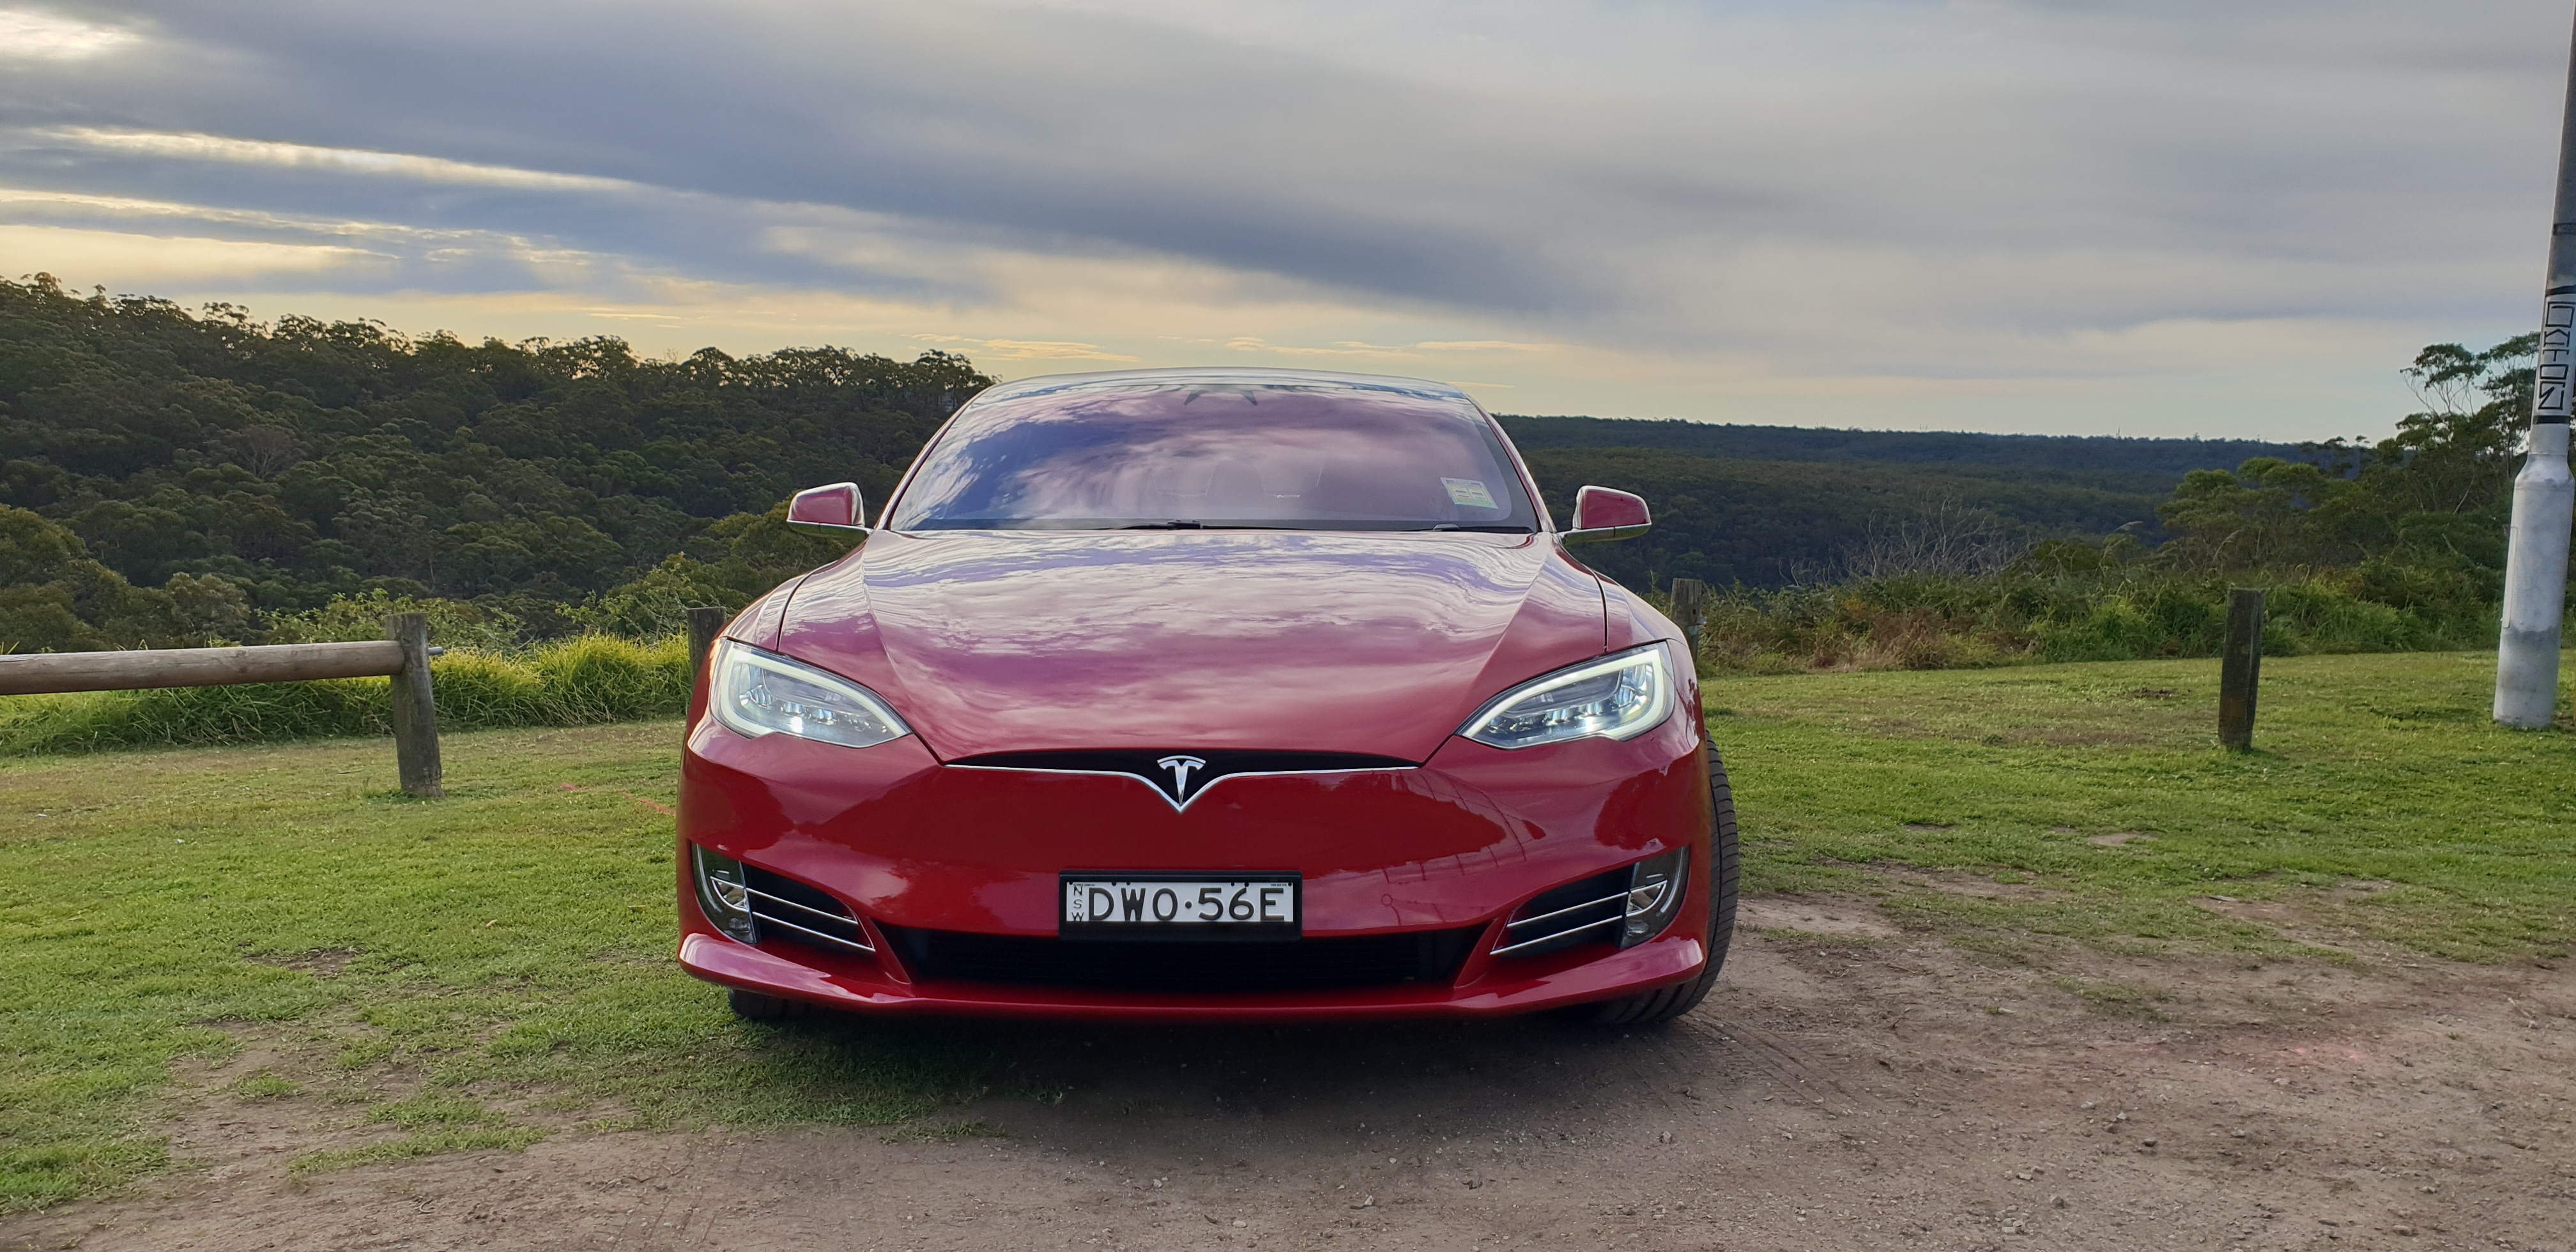 Top 10 Things To Know About The 2018 Tesla Model S 75d Top10cars